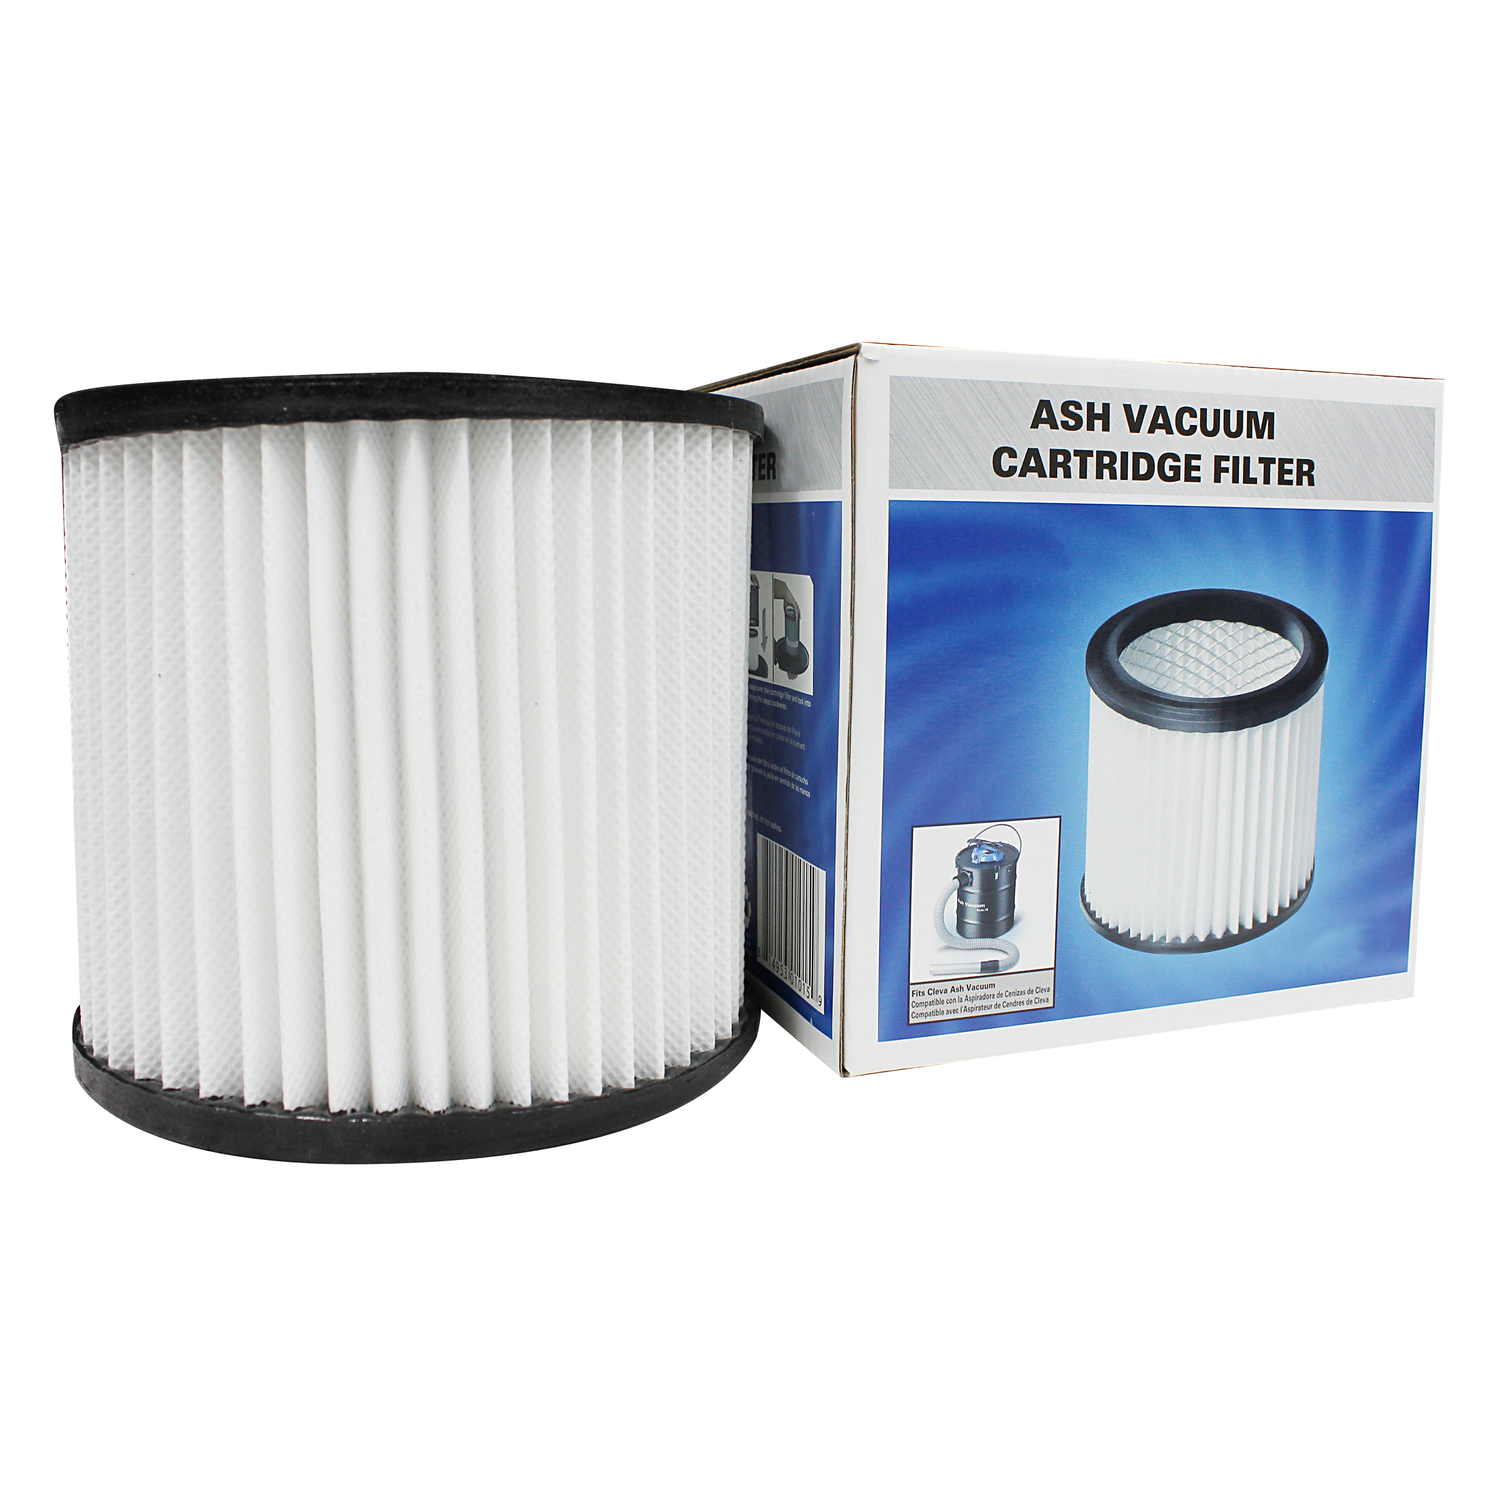 Darcon  5.4 in. L x 5.5 in. W CARTRIDGE  Ash Vacuum Cartridge Filter  White  1 pk